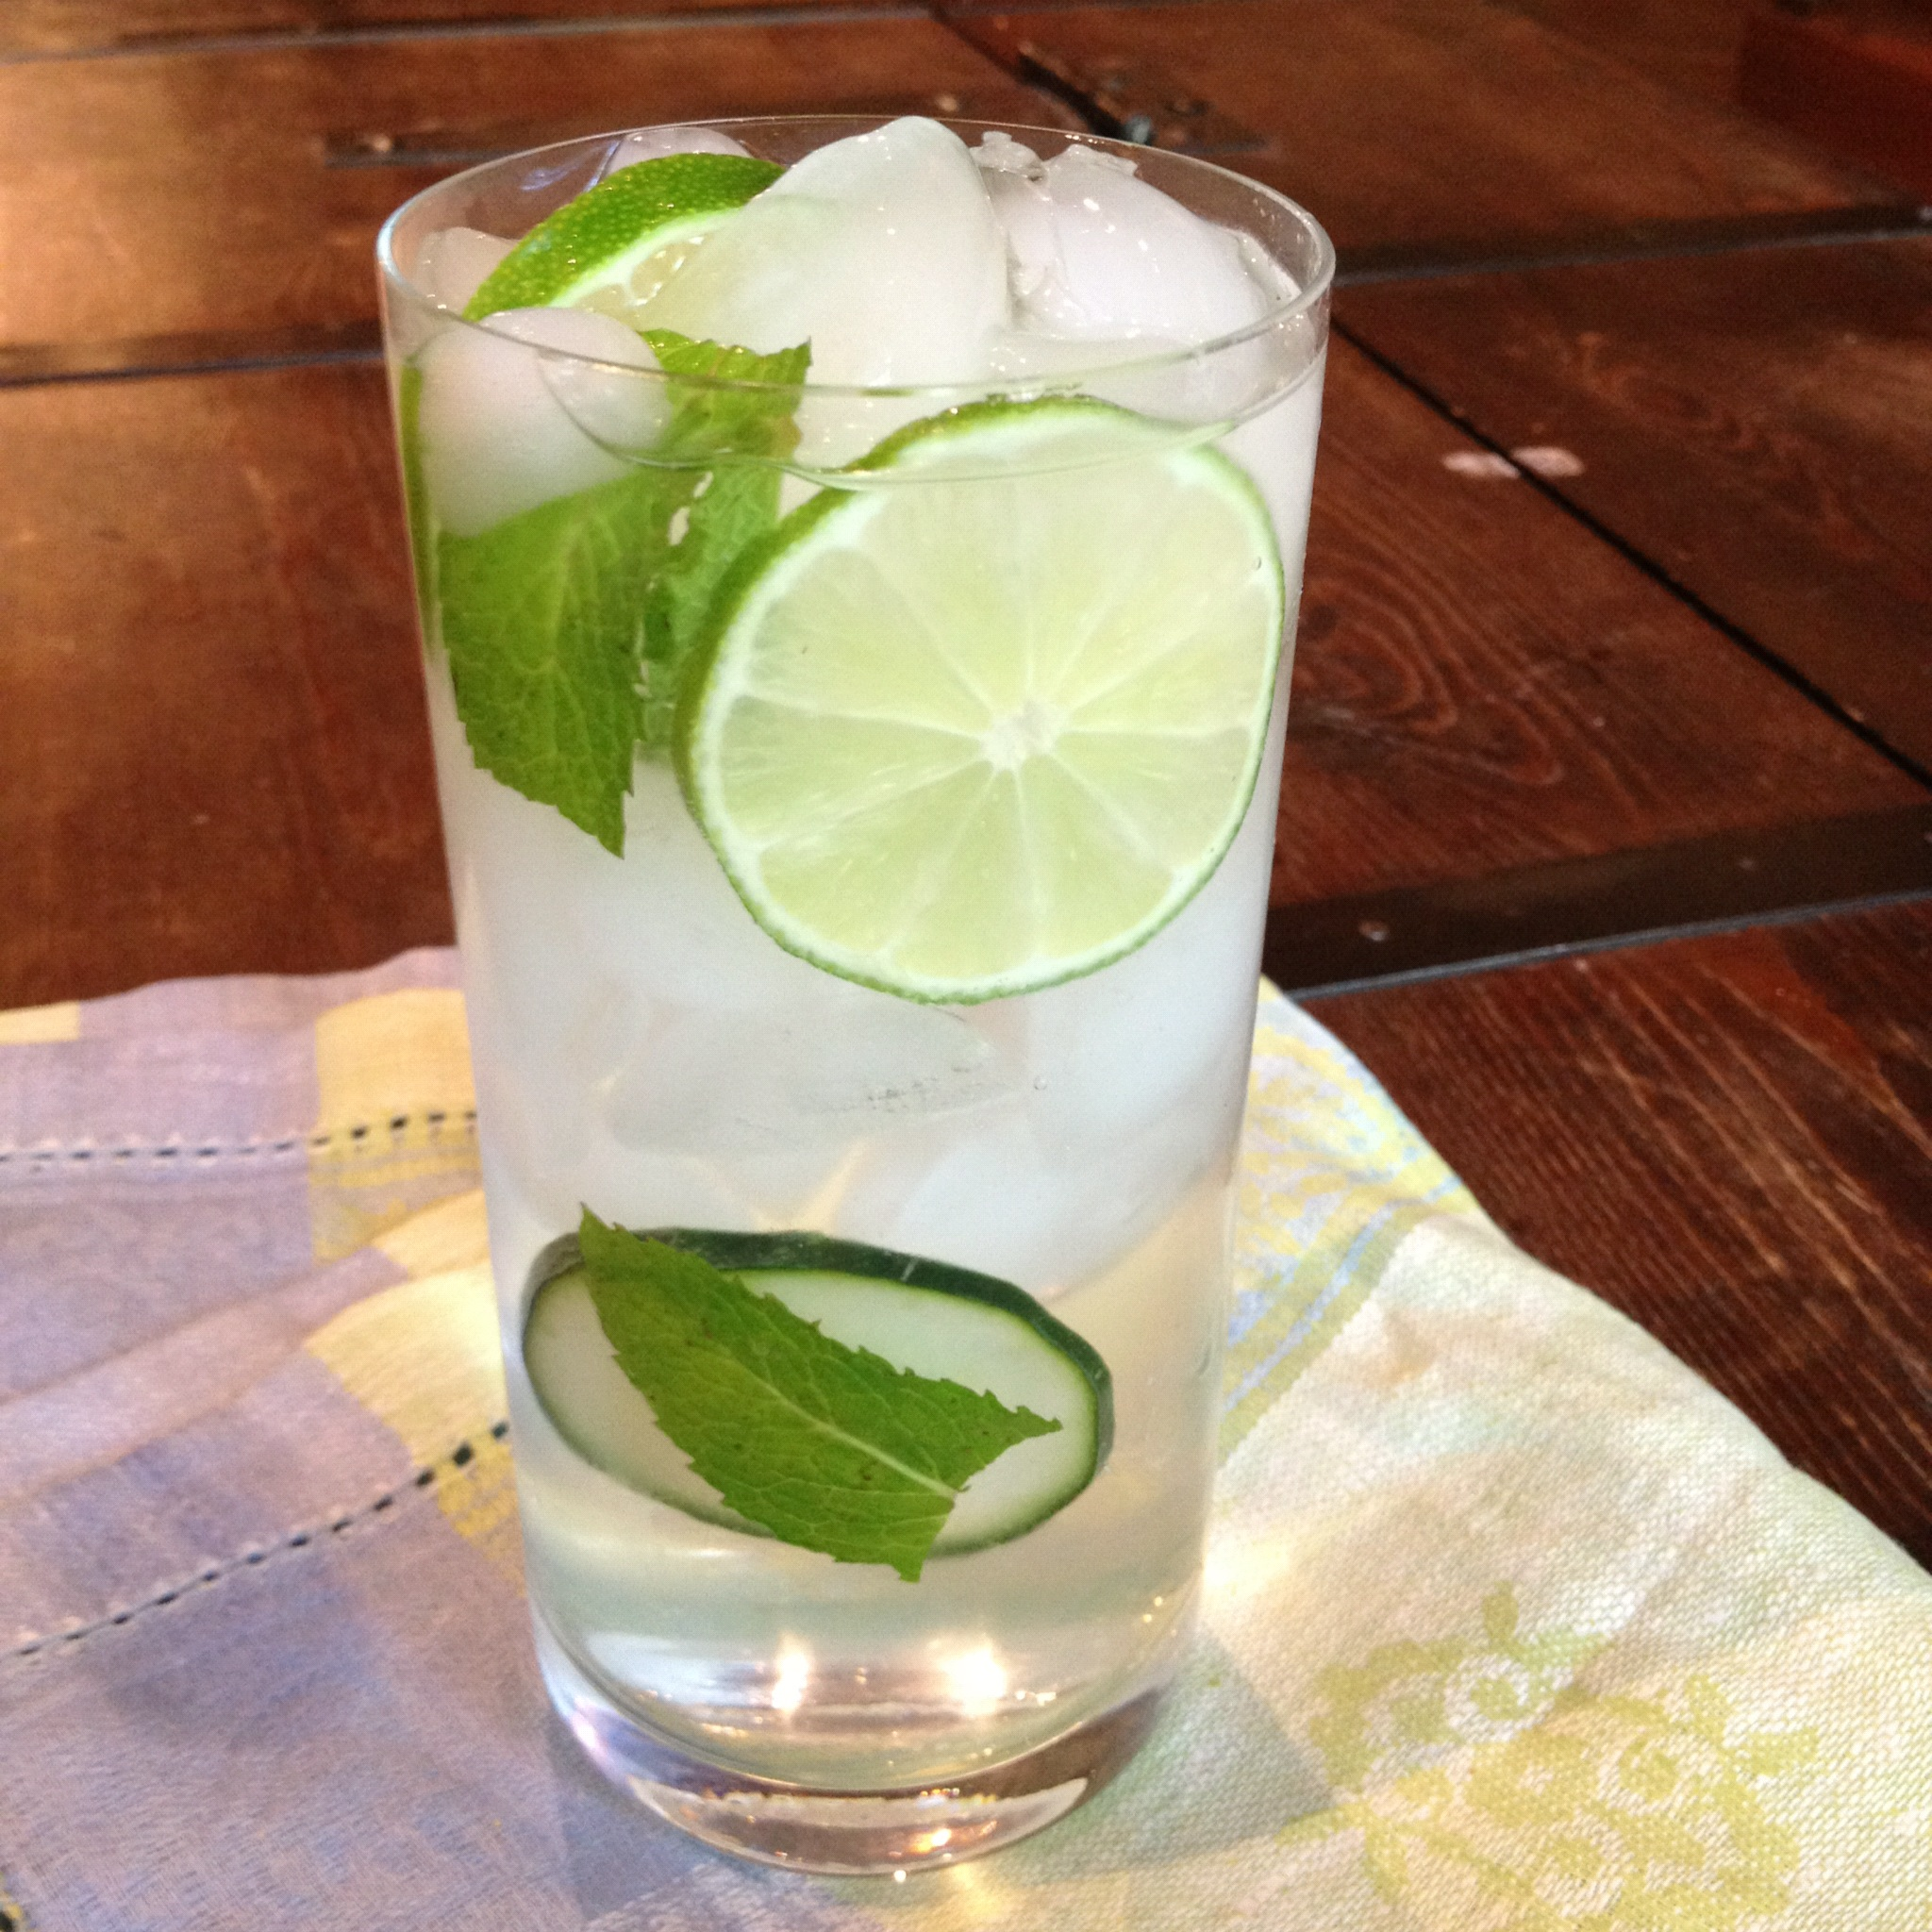 How to make lime flavored water